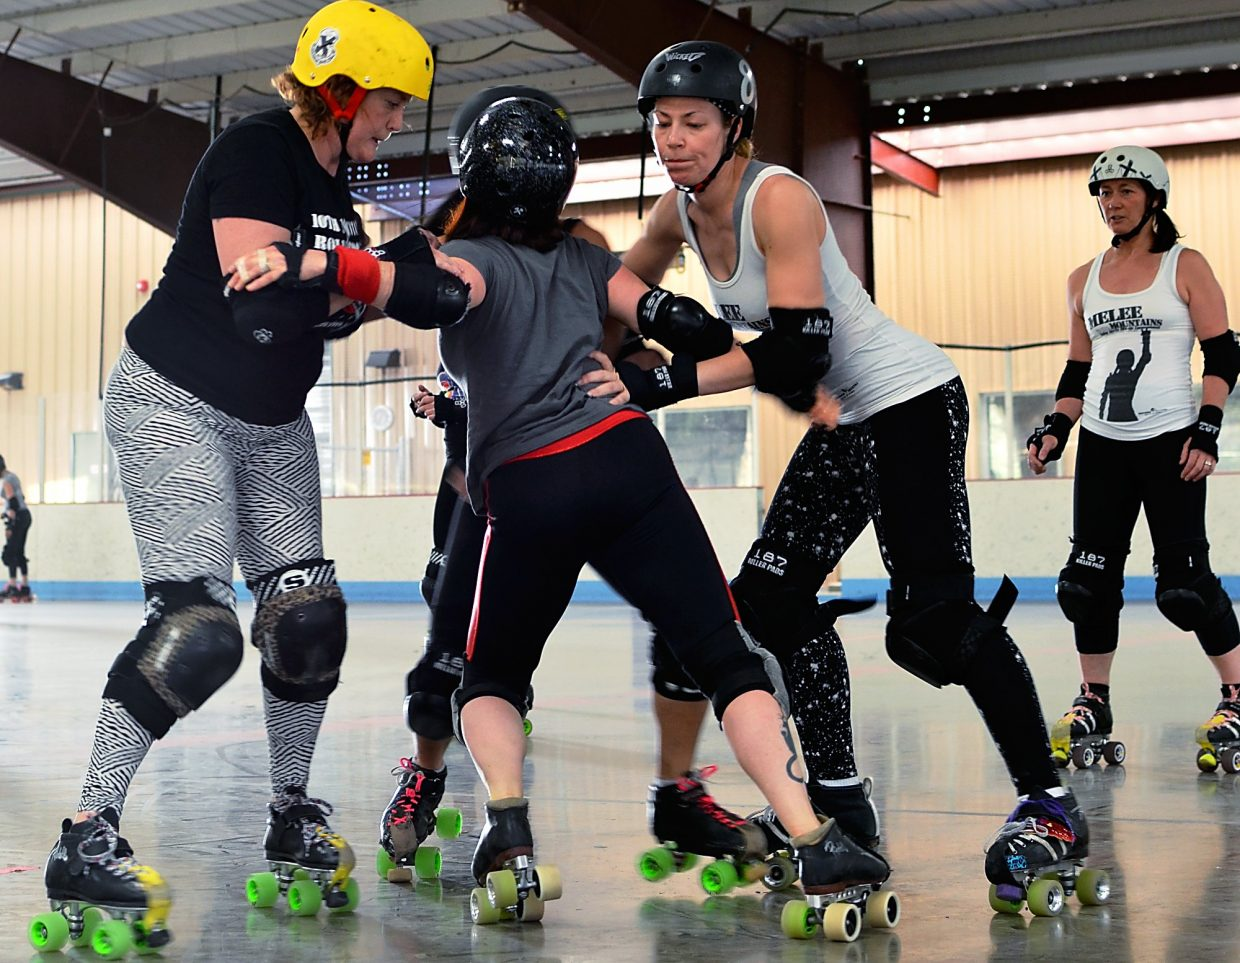 Jessica Montgomery, Diane Chapin, Katie McClanahan and Roslyn Bernstein practice a roller derby drill at the Glenwood Rec Center.